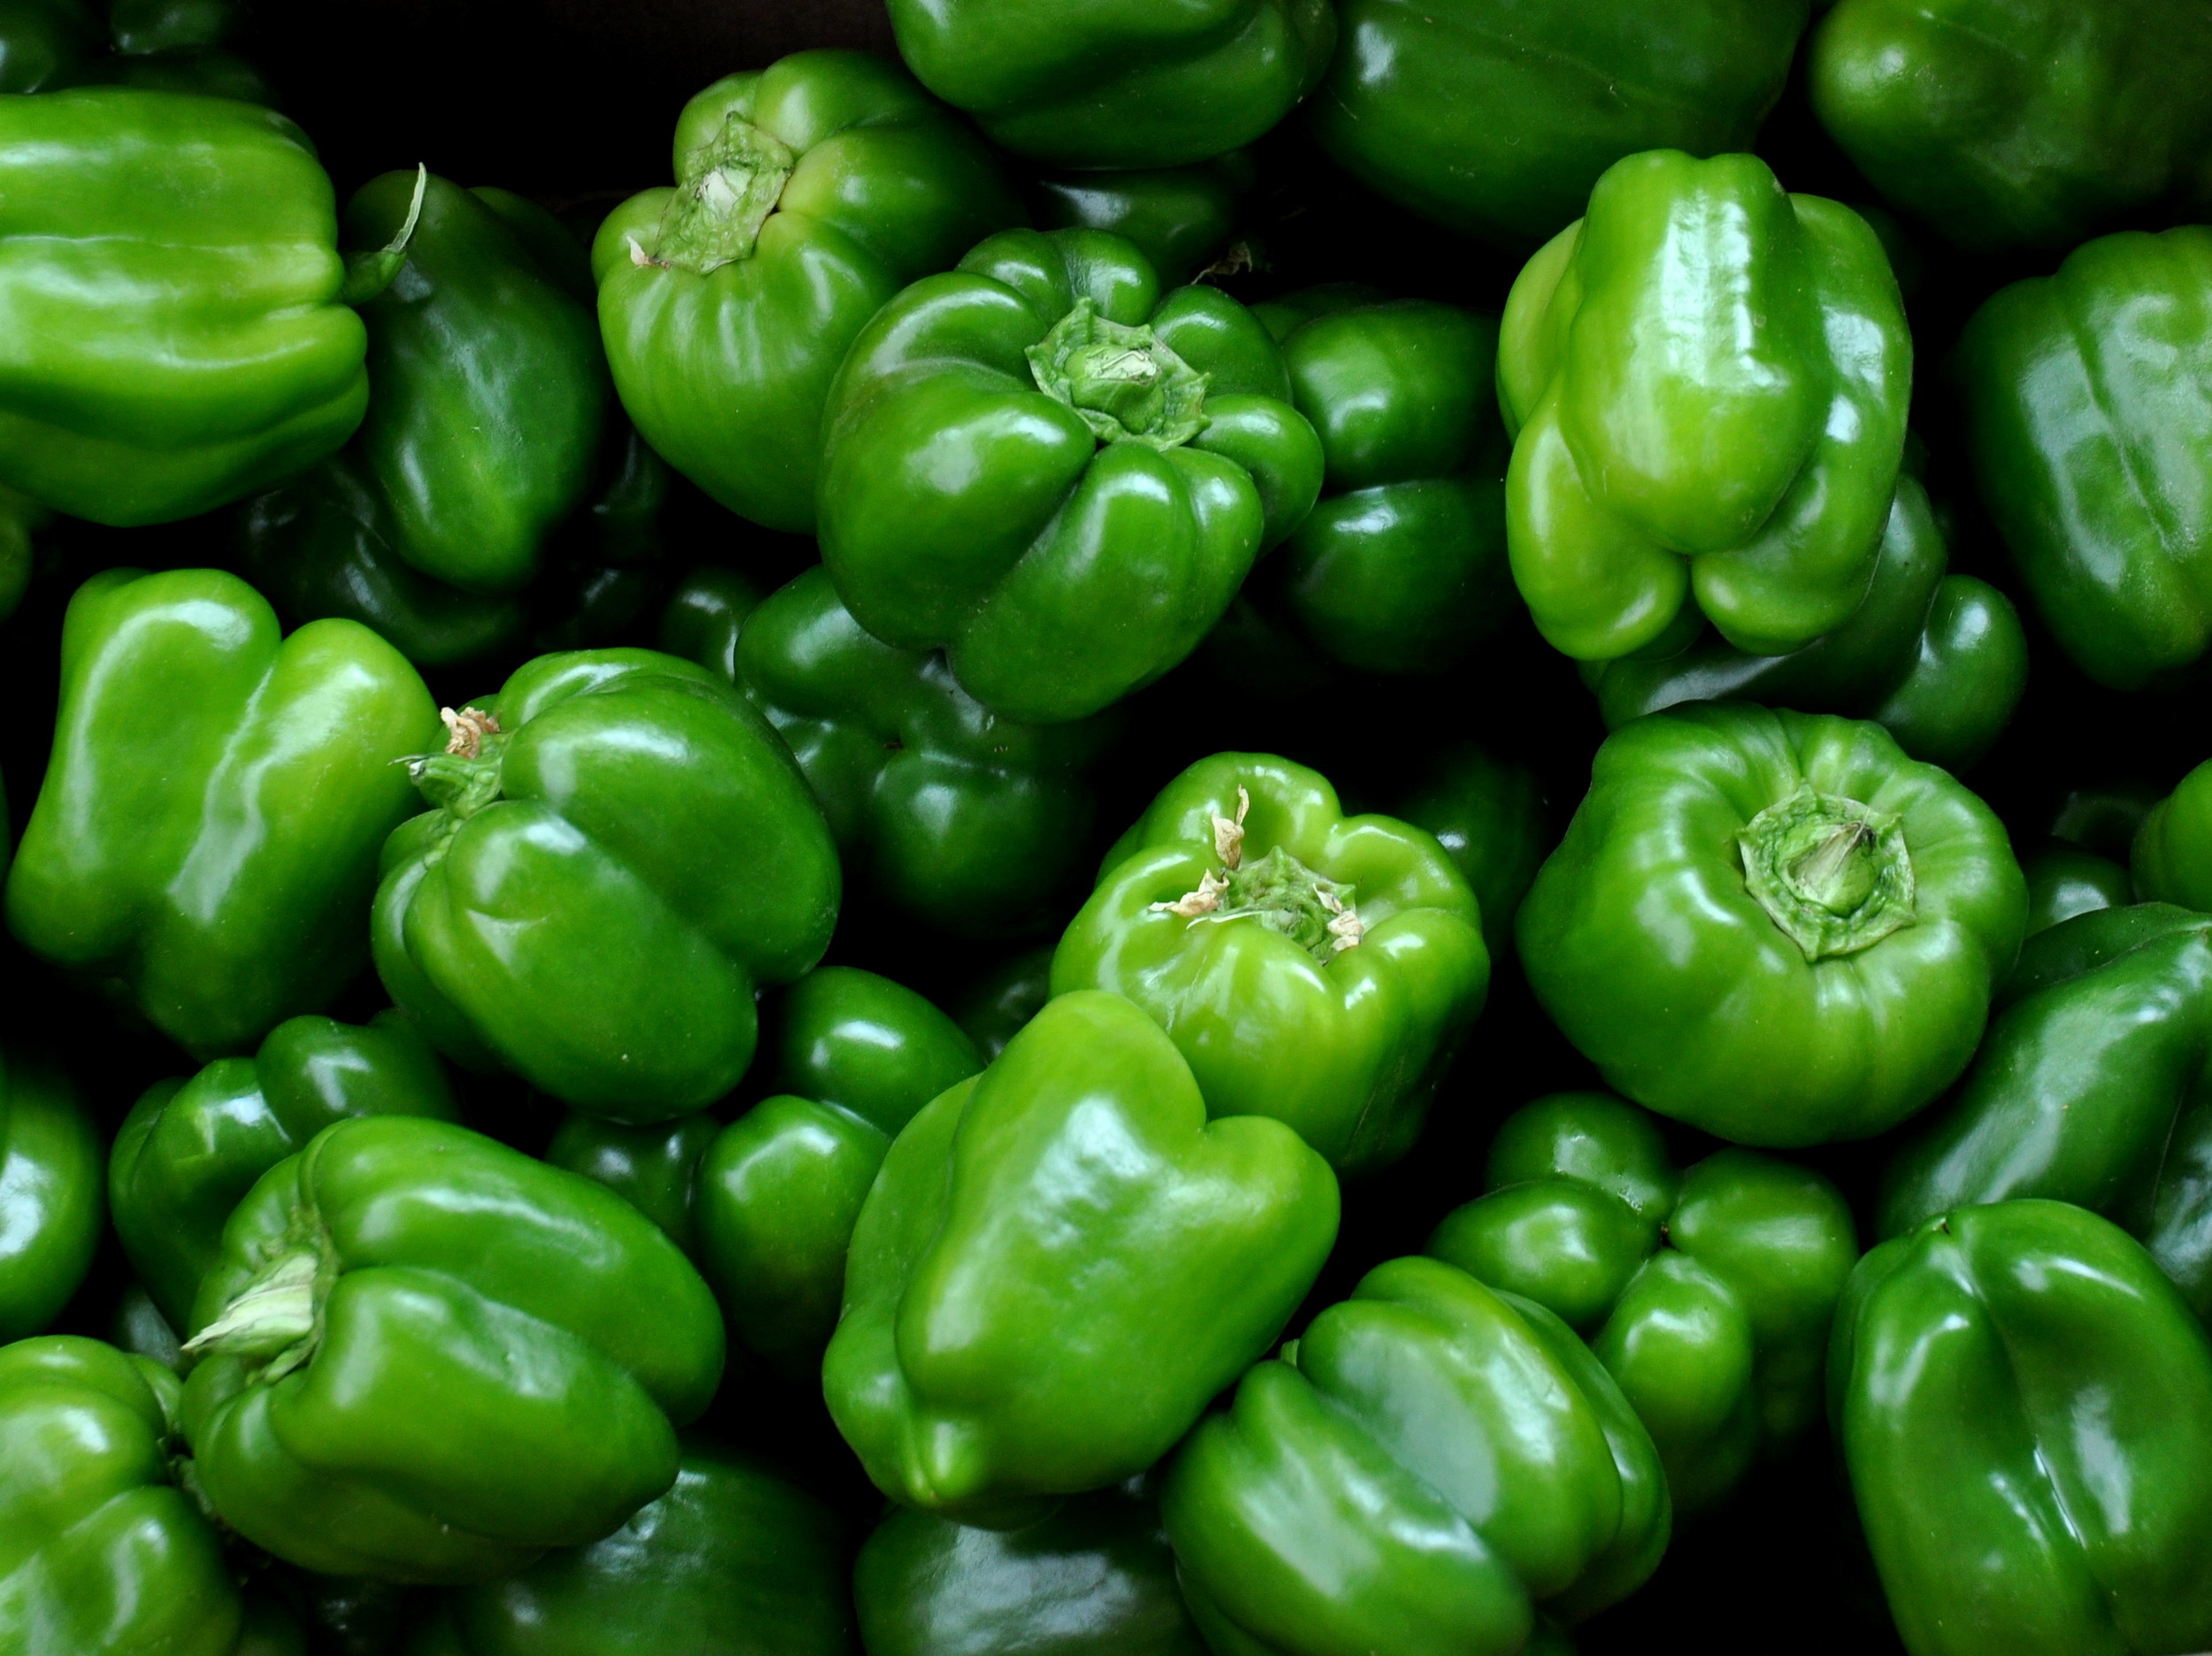 Green bell peppers from Lyall Farms. Photo copyright 2013 by Zachary D. Lyons.